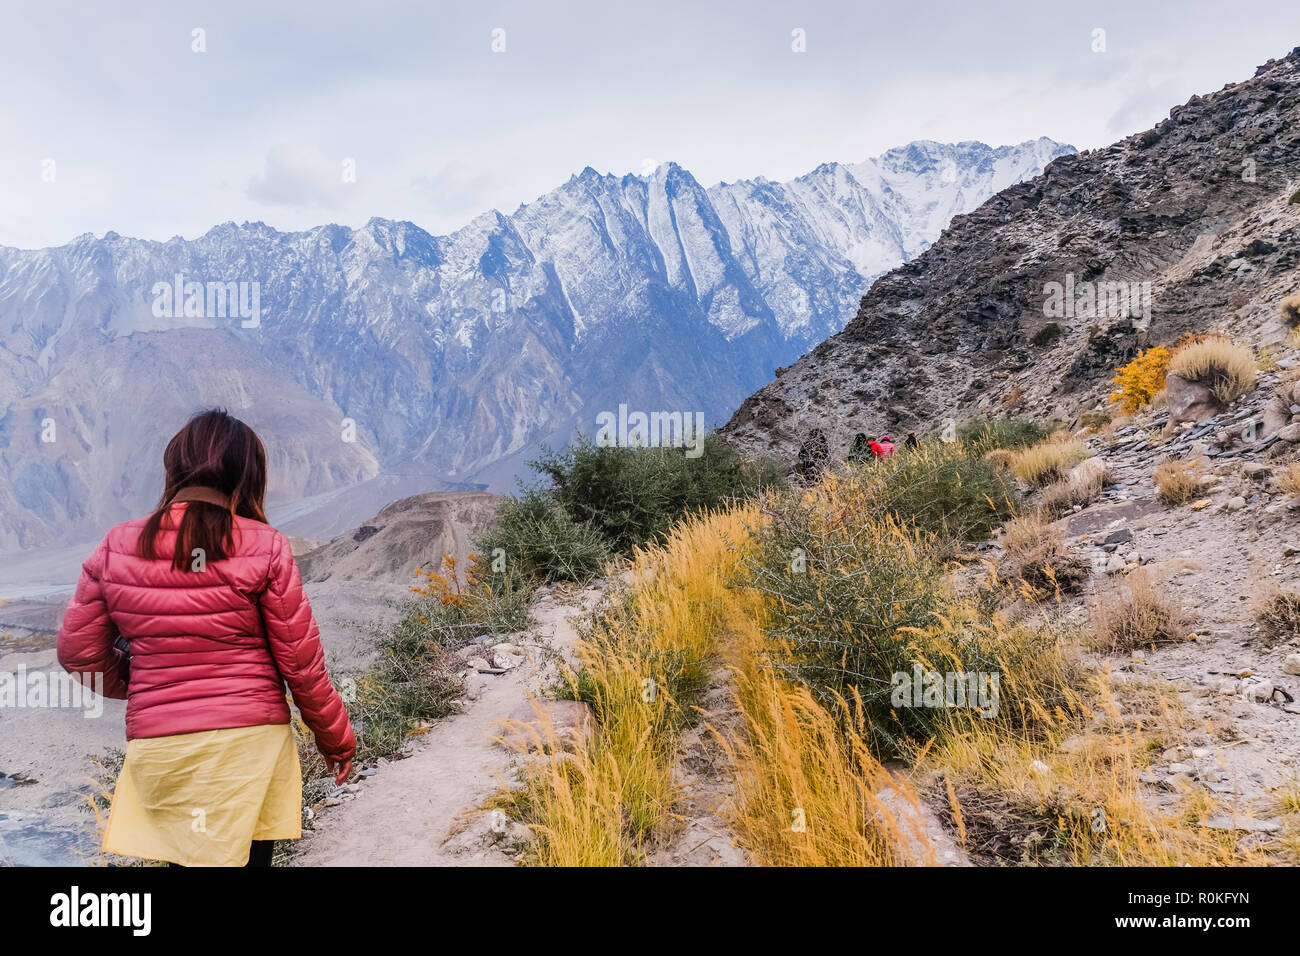 Tourists walking along the track at Passu glacier in autumn season, with snow capped mountains on the background. - Stock Image